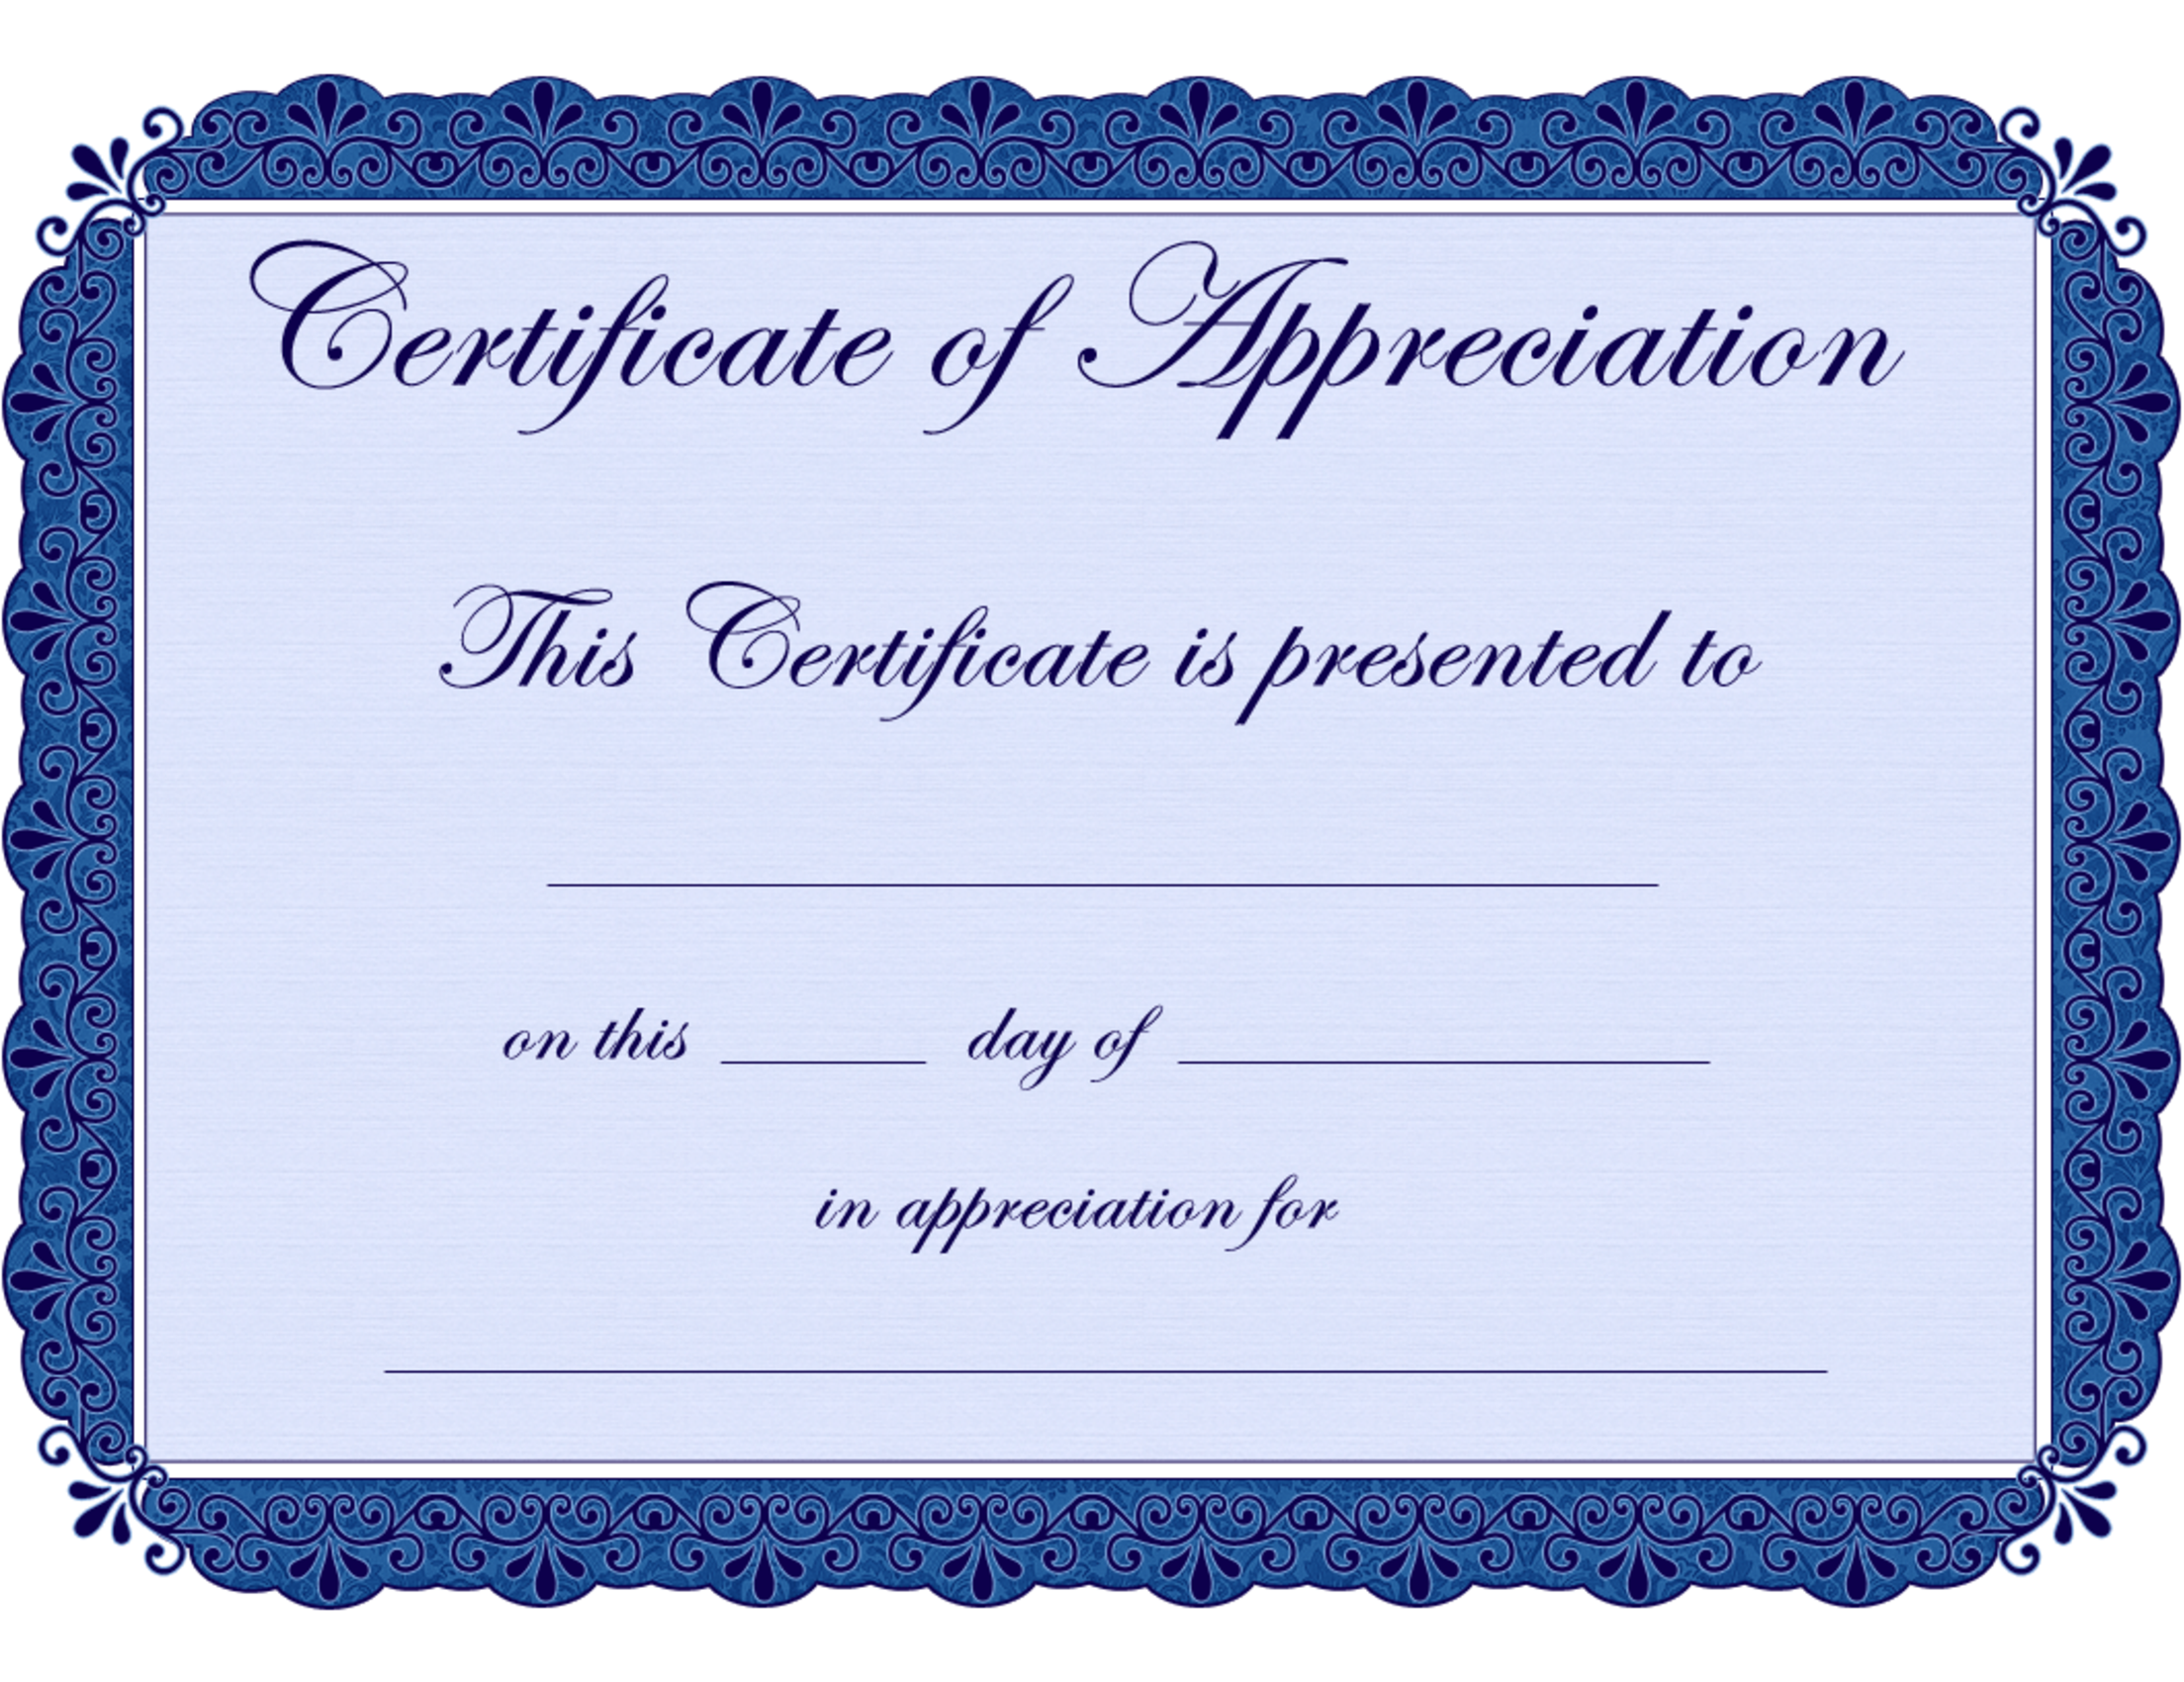 Wonderful Free Printable Certificates Certificate Of Appreciation Certificate ... |  Certificate Of Appreciation | Pinterest | Free Printable Certificates, ... For Free Blank Certificates